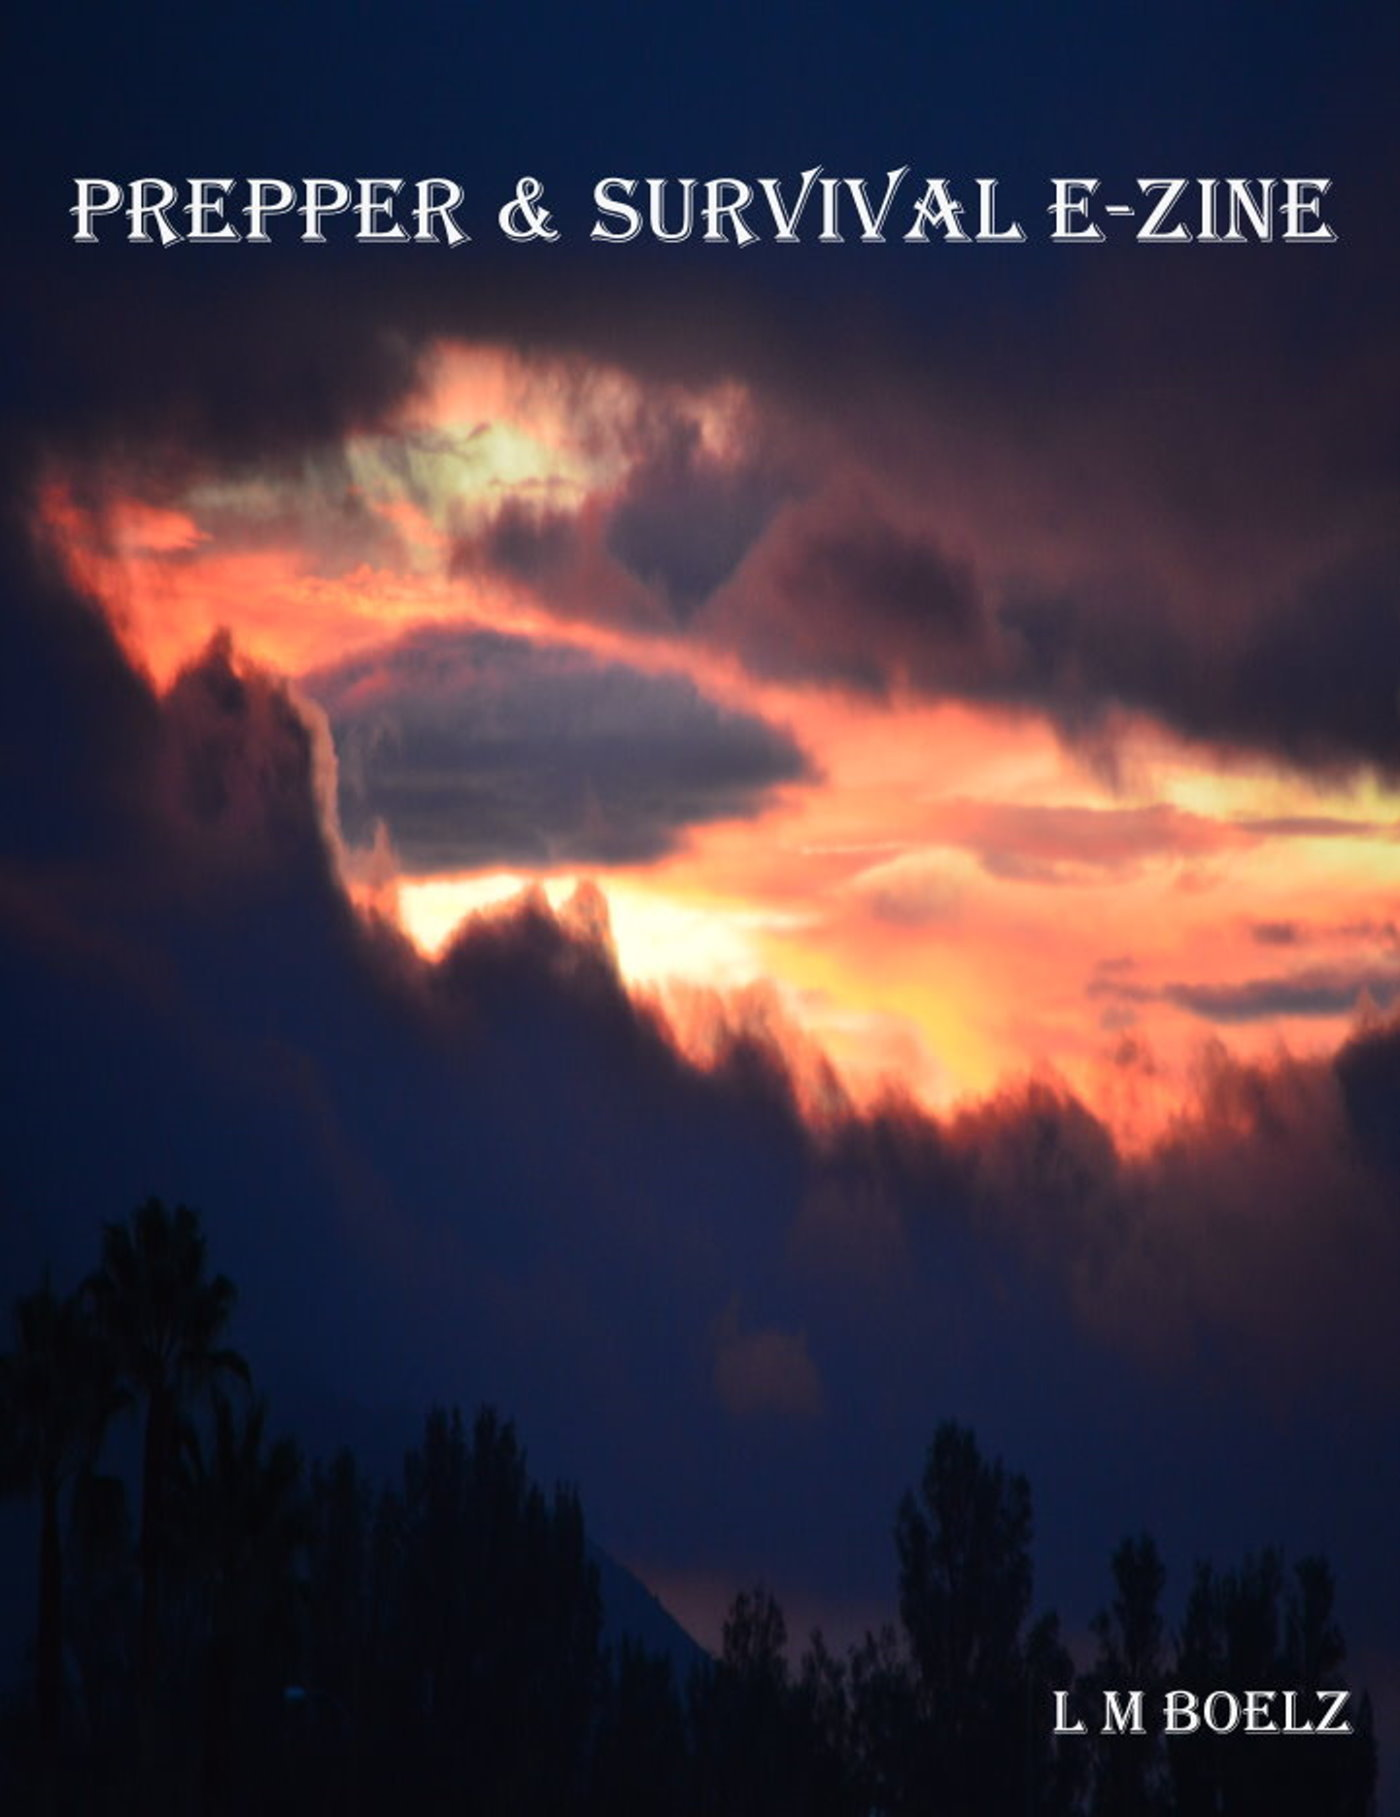 Prepper & Survival E-Zine By: L. M. Boelz